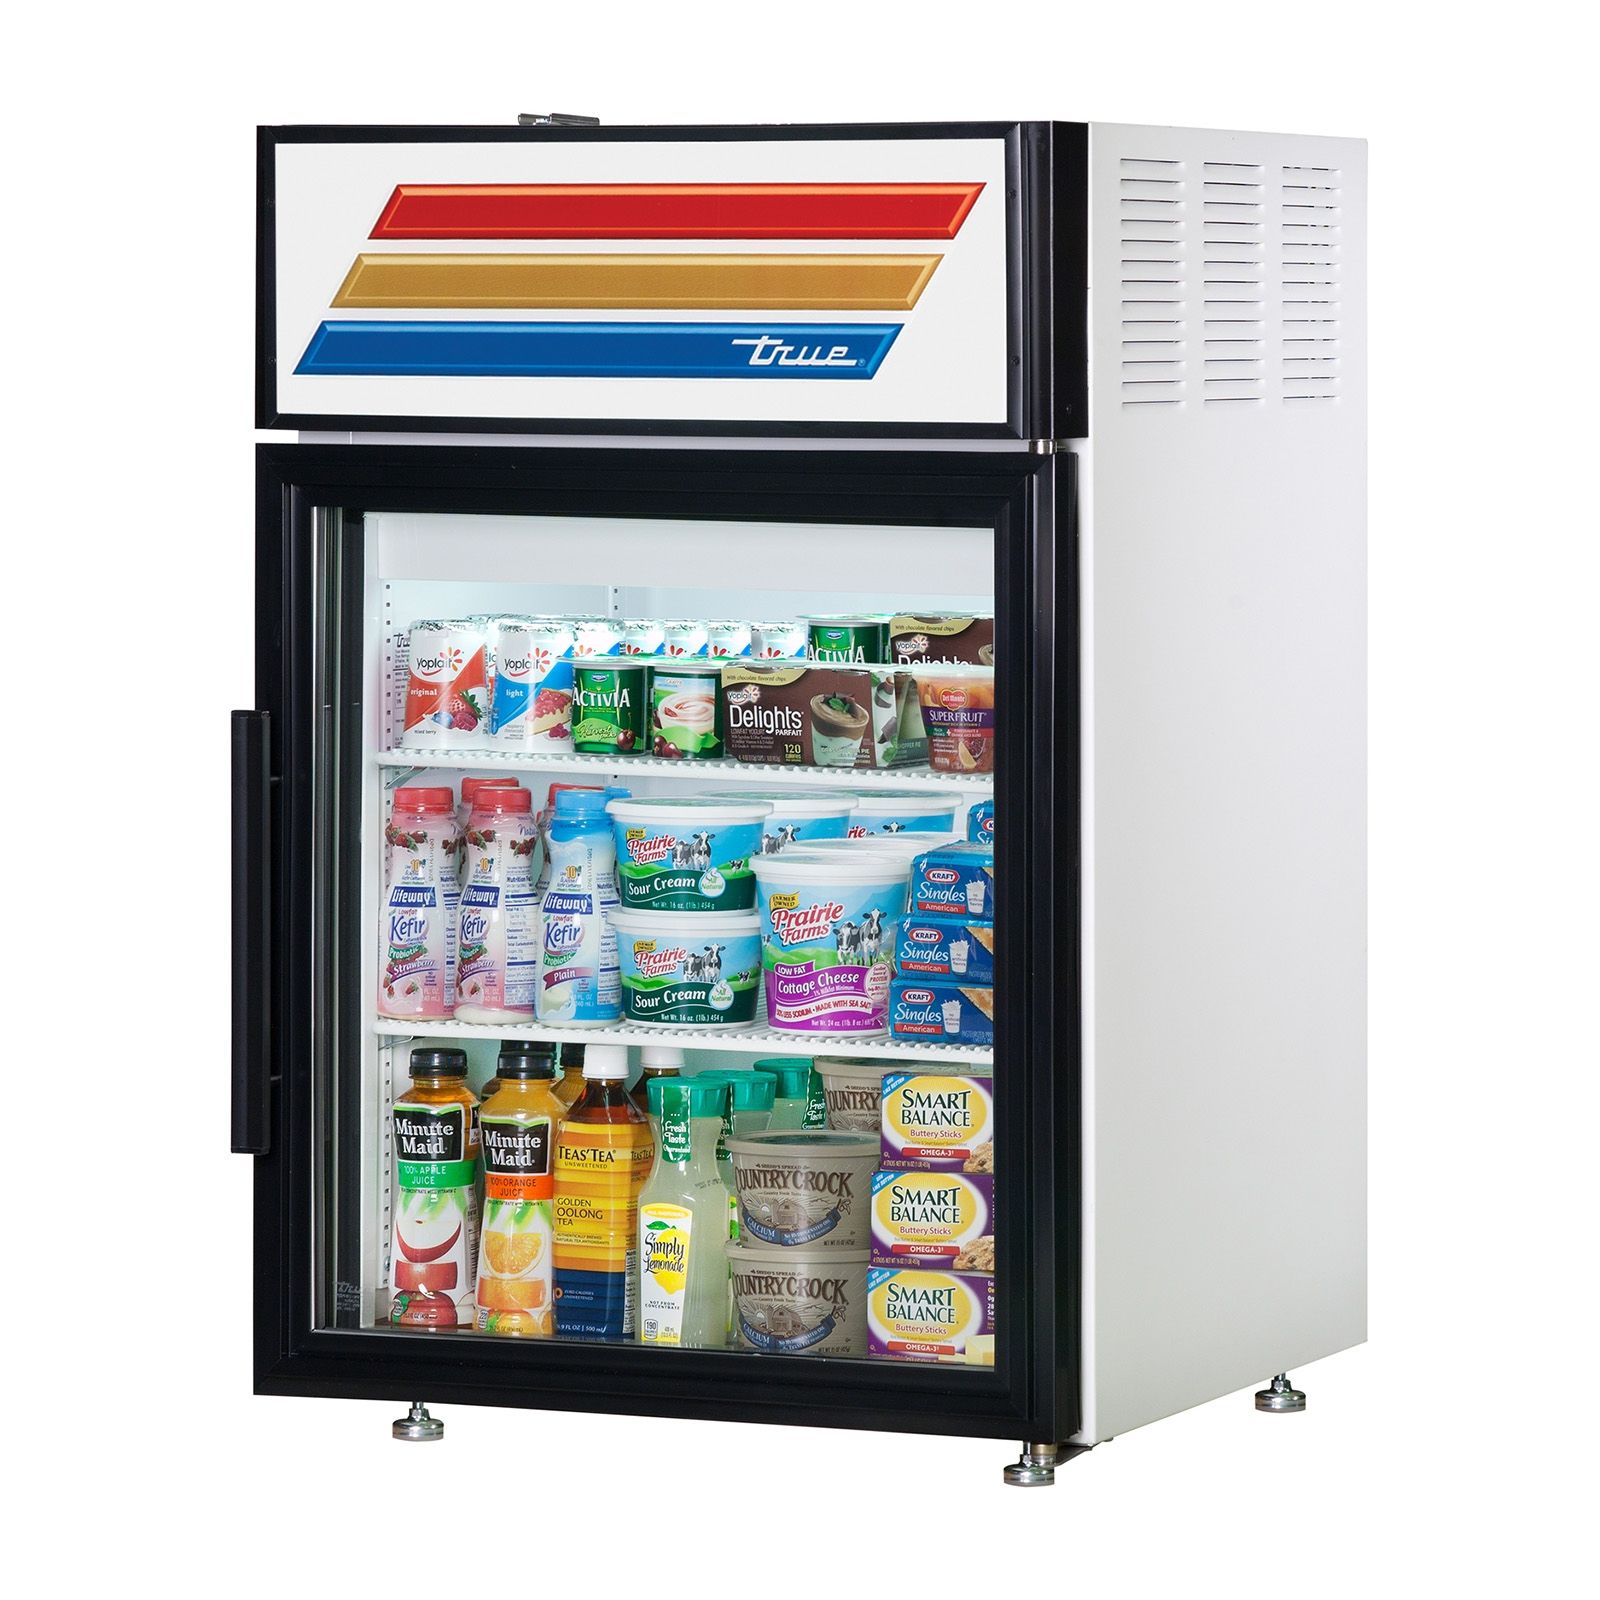 GDM-05-LD – True Display Refrigerator, Countertop